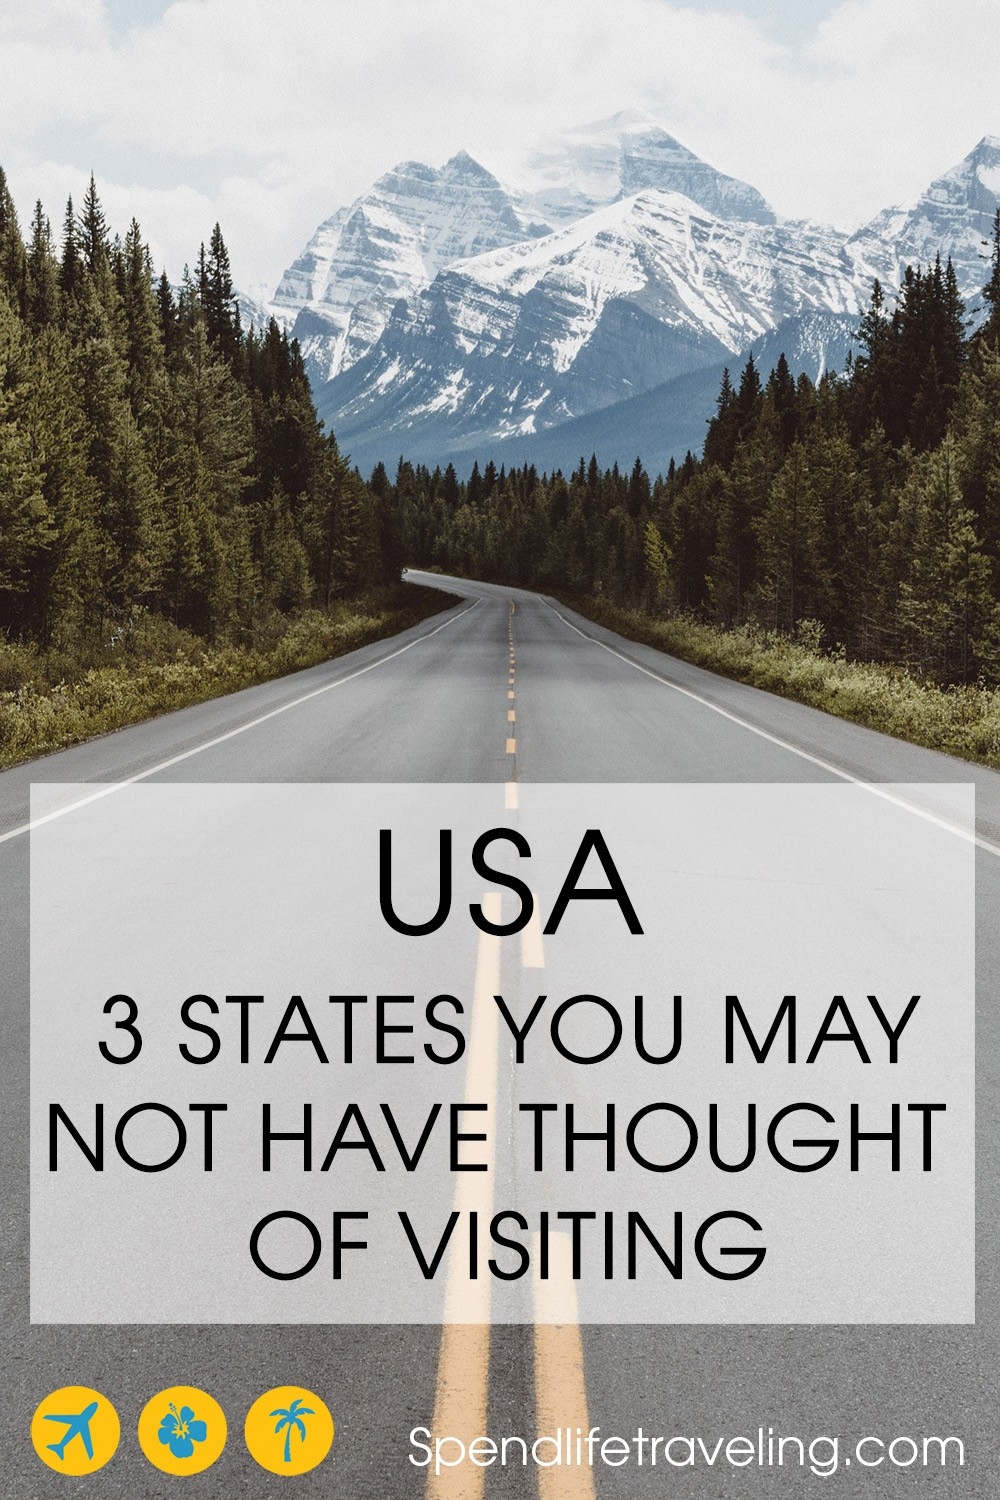 USA: 3 states worth visiting that probably weren't on your bucket list yet